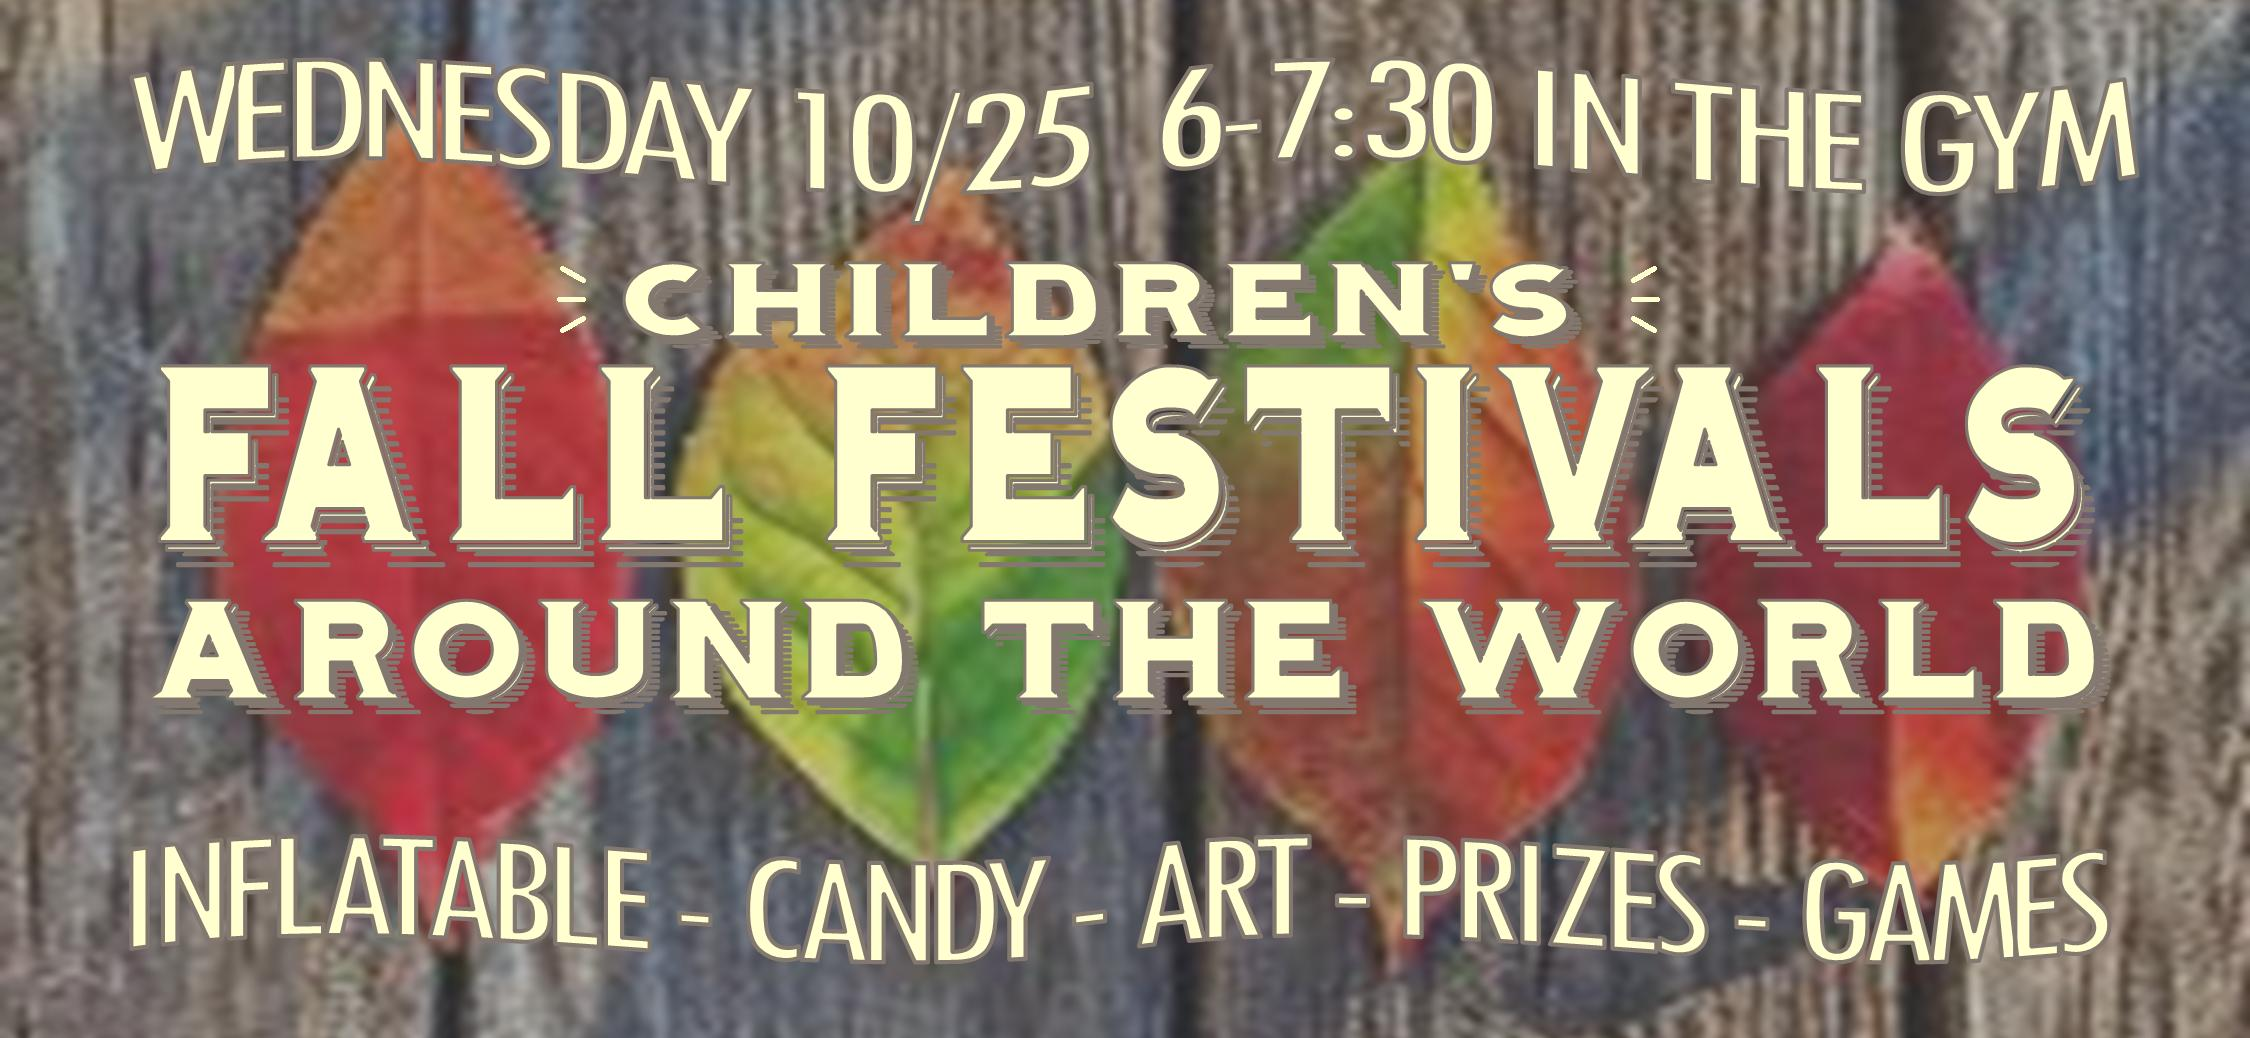 Fall Festival  Web Page Art 101916.jpg